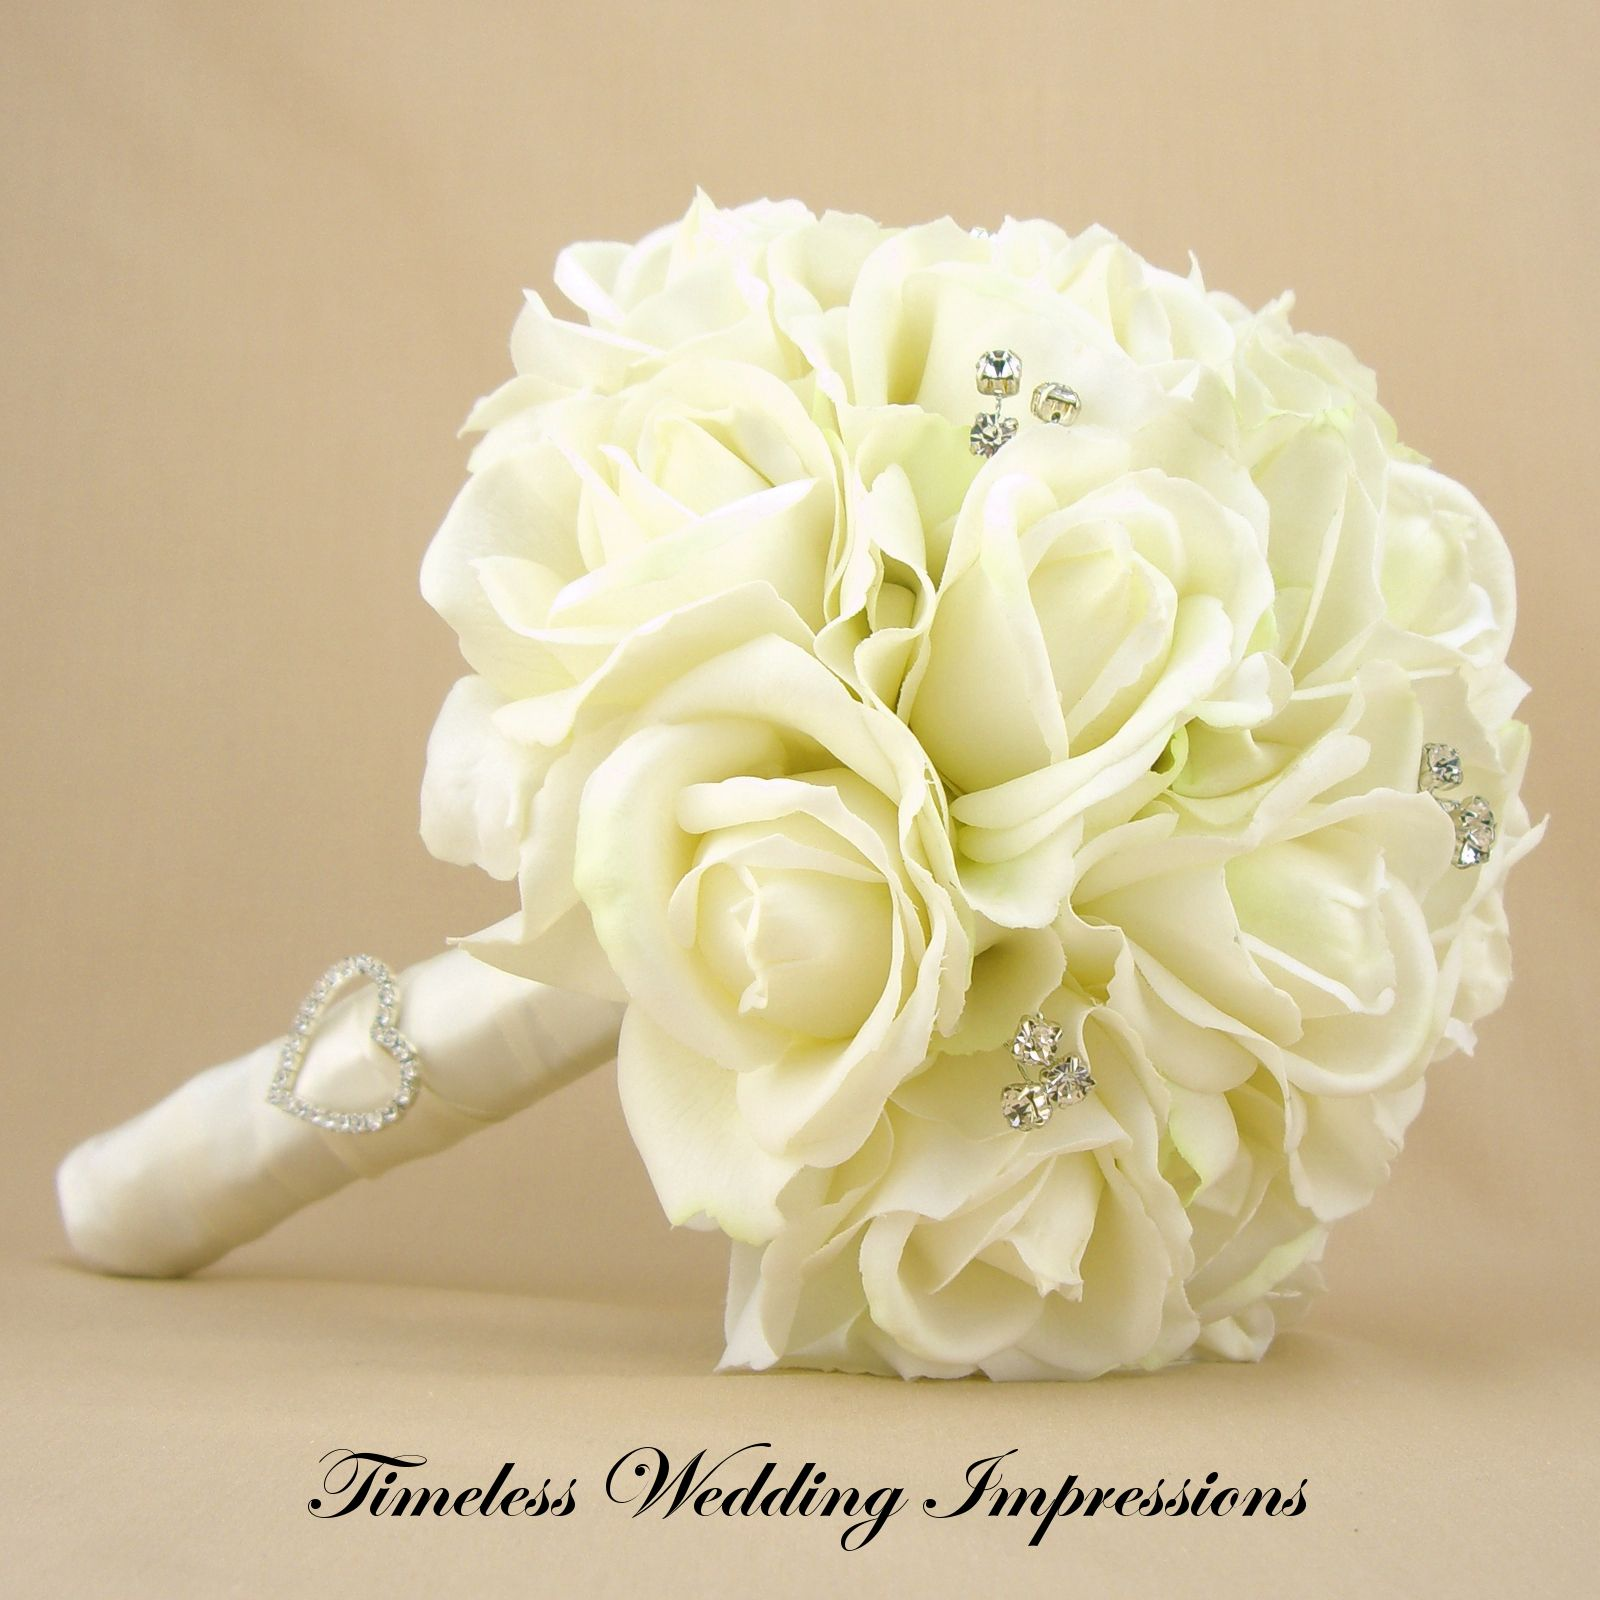 Bridal ouquets with virginia roses and hydragenas bridal bouquet bridal ouquets with virginia roses and hydragenas bridal bouquet white roses real touch silk wedding flowers rhinestones mightylinksfo